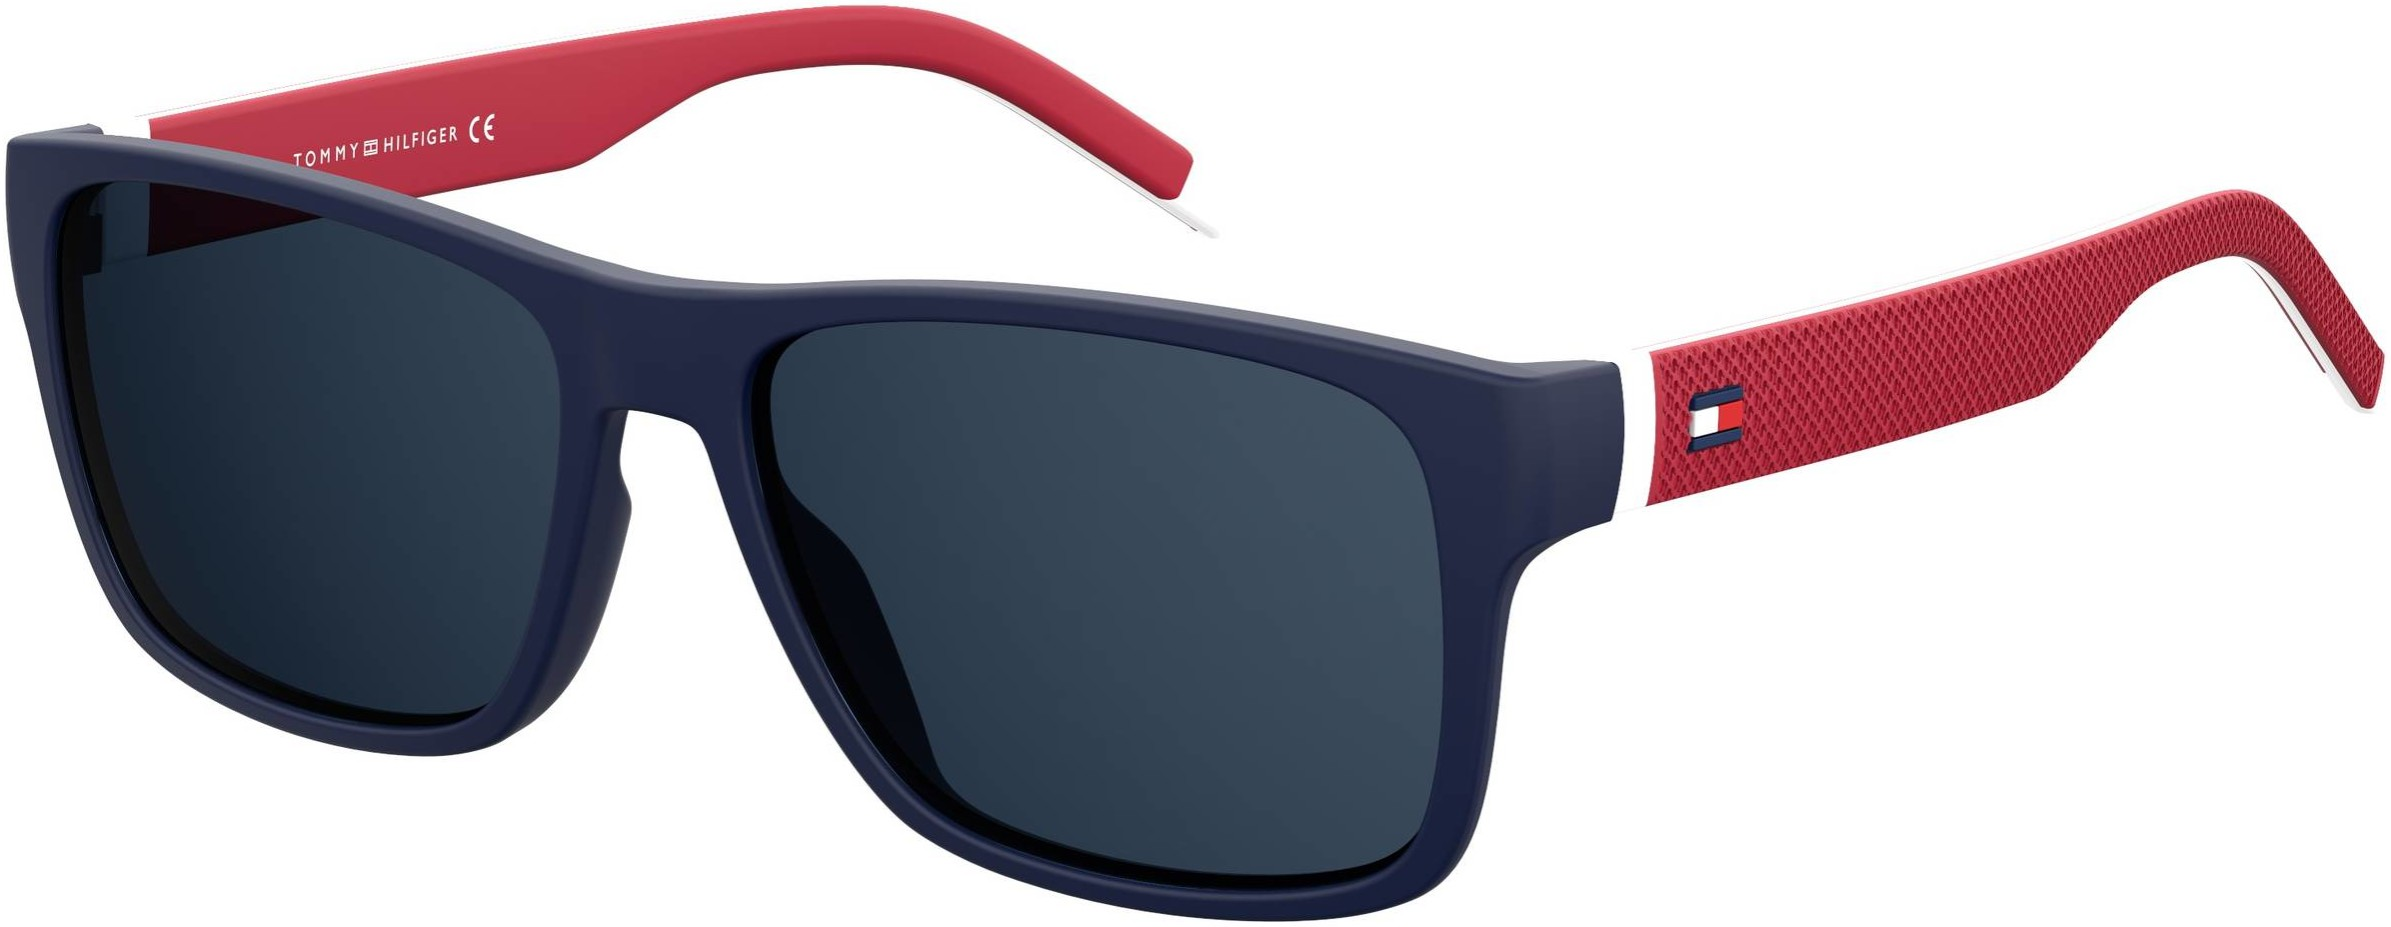 Tommy Hilfiger red white and blue